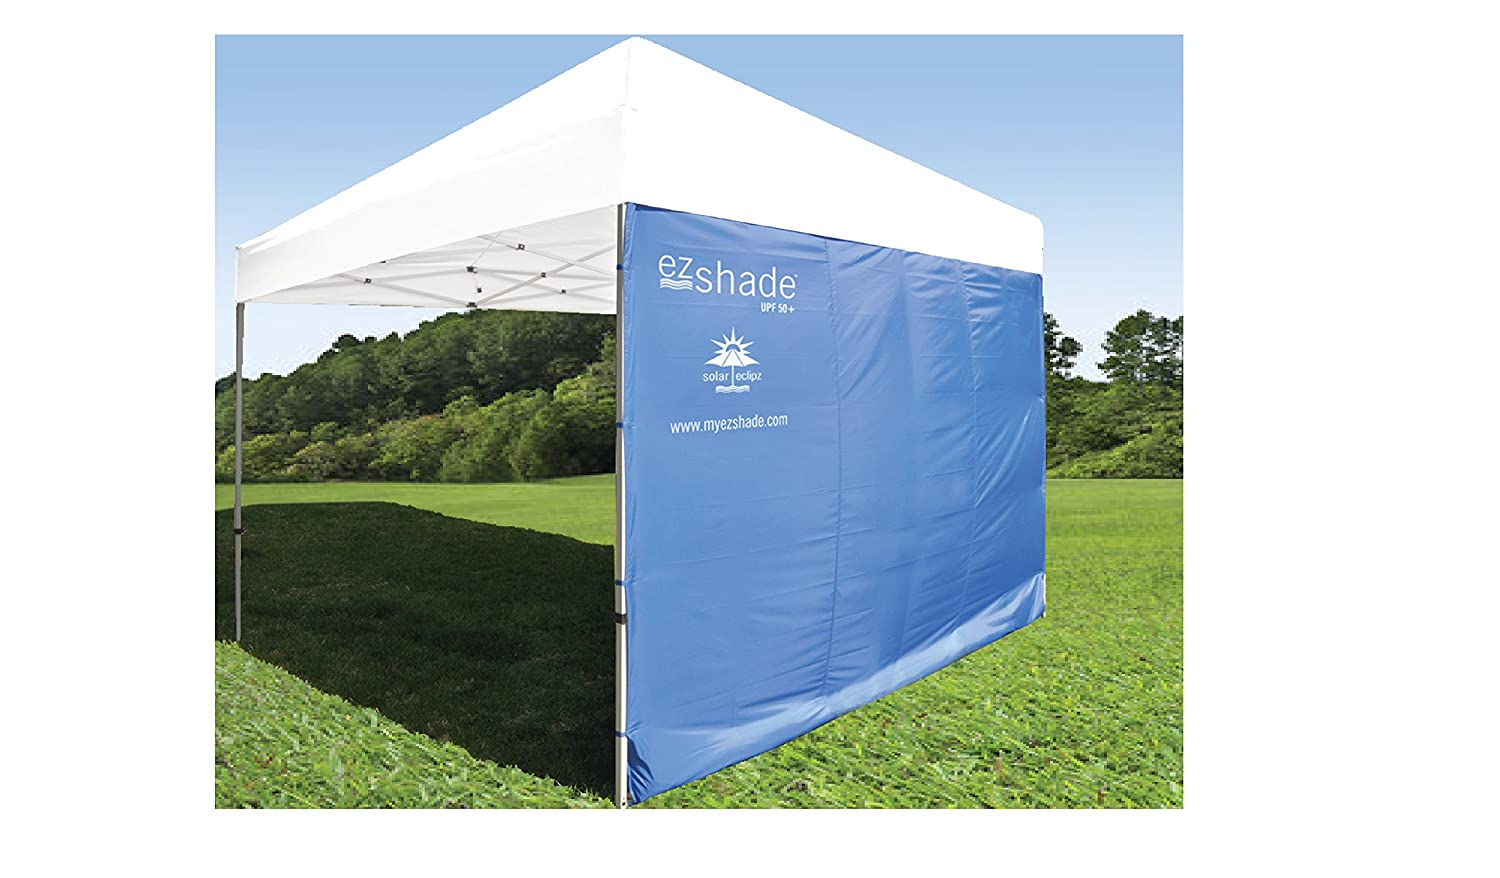 amazoncom superior sun protection ezshade canopy sunshield blocks 99 uvauvb rays doubles shade keeps you cooler and instantly attaches to any - U Shape Canopy 2015